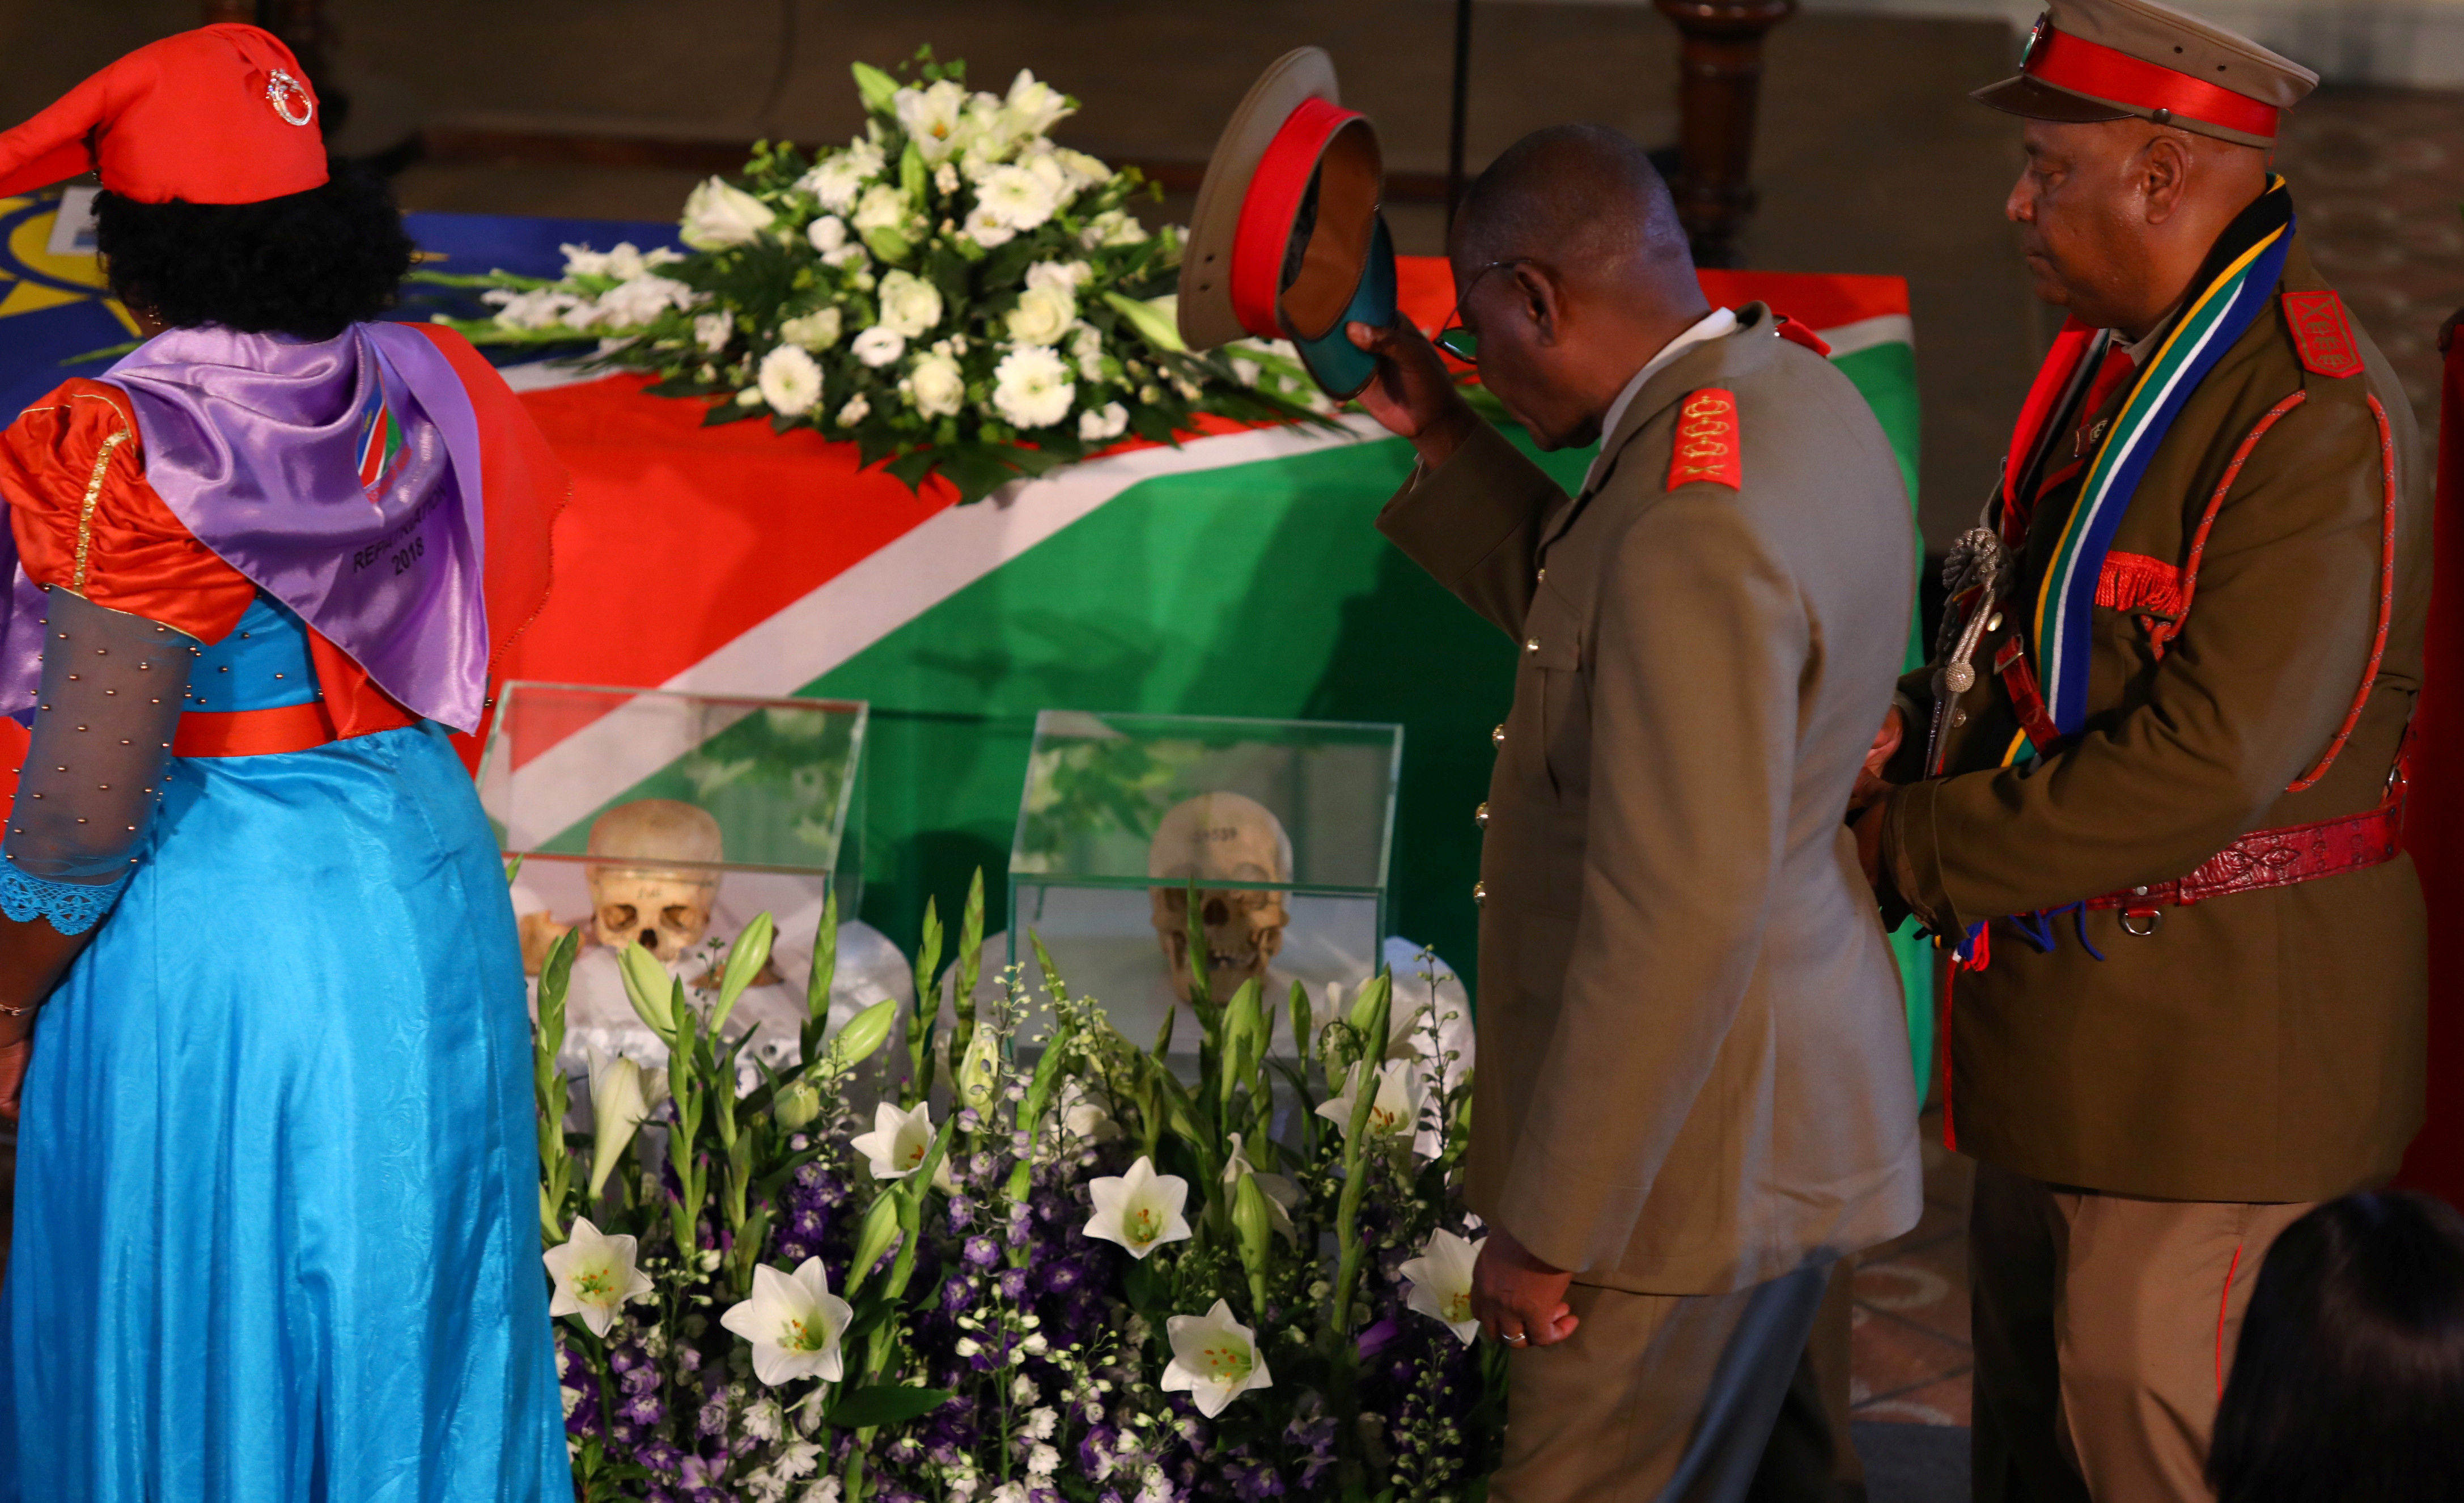 Members of a delegation attend a ceremony in Berlin, Germany, August 29, 2018, to hand back human remains from Germany to Namibia following the 1904-1908 genocide against the Herero and Nama